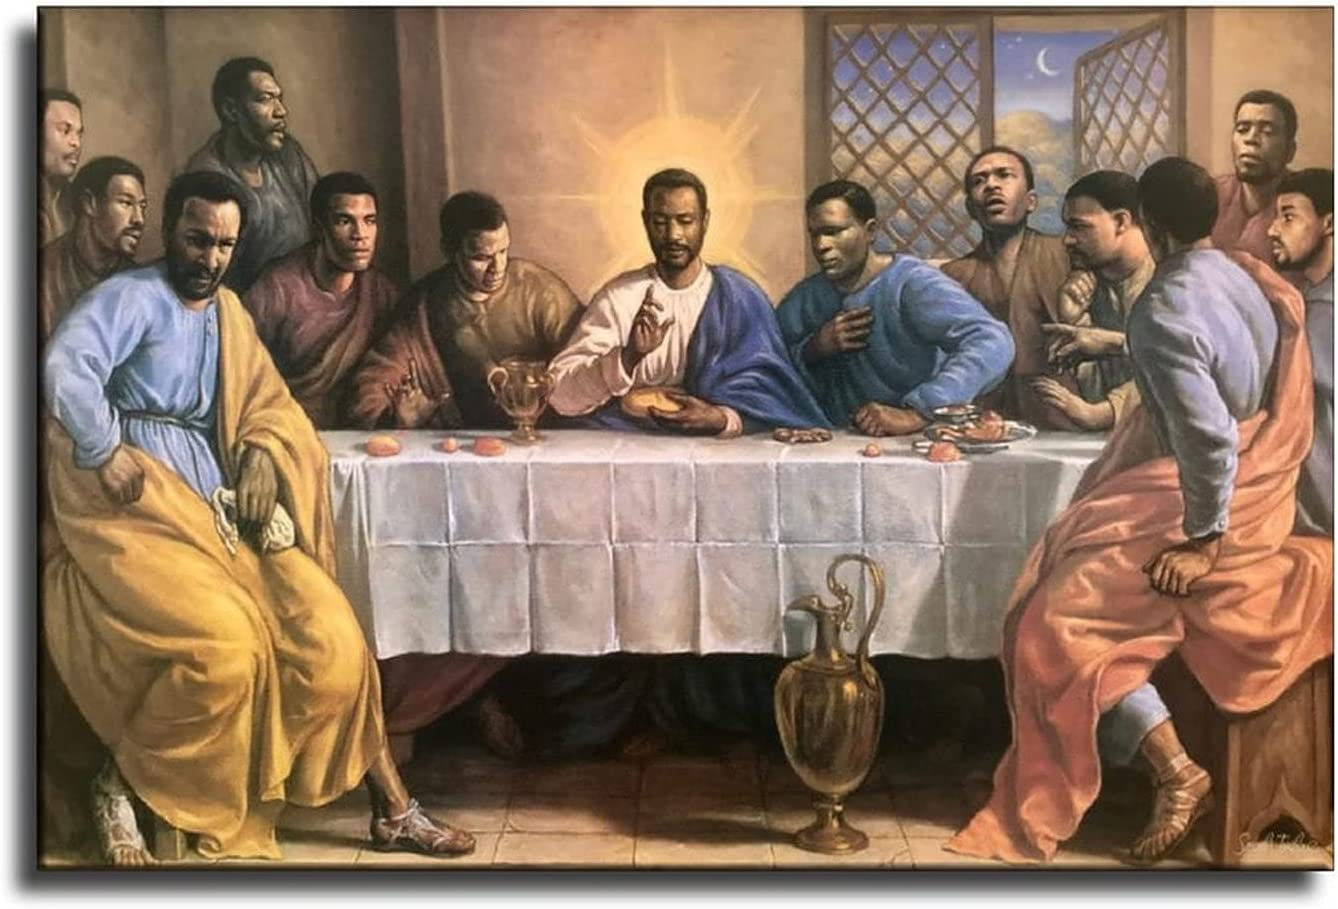 preeminent African American The Last Supper Jesus Christ Canvas Art Poster and Wall Art Picture Print Modern Family Bedroom Decor Posters 08×12inch(20×30cm)